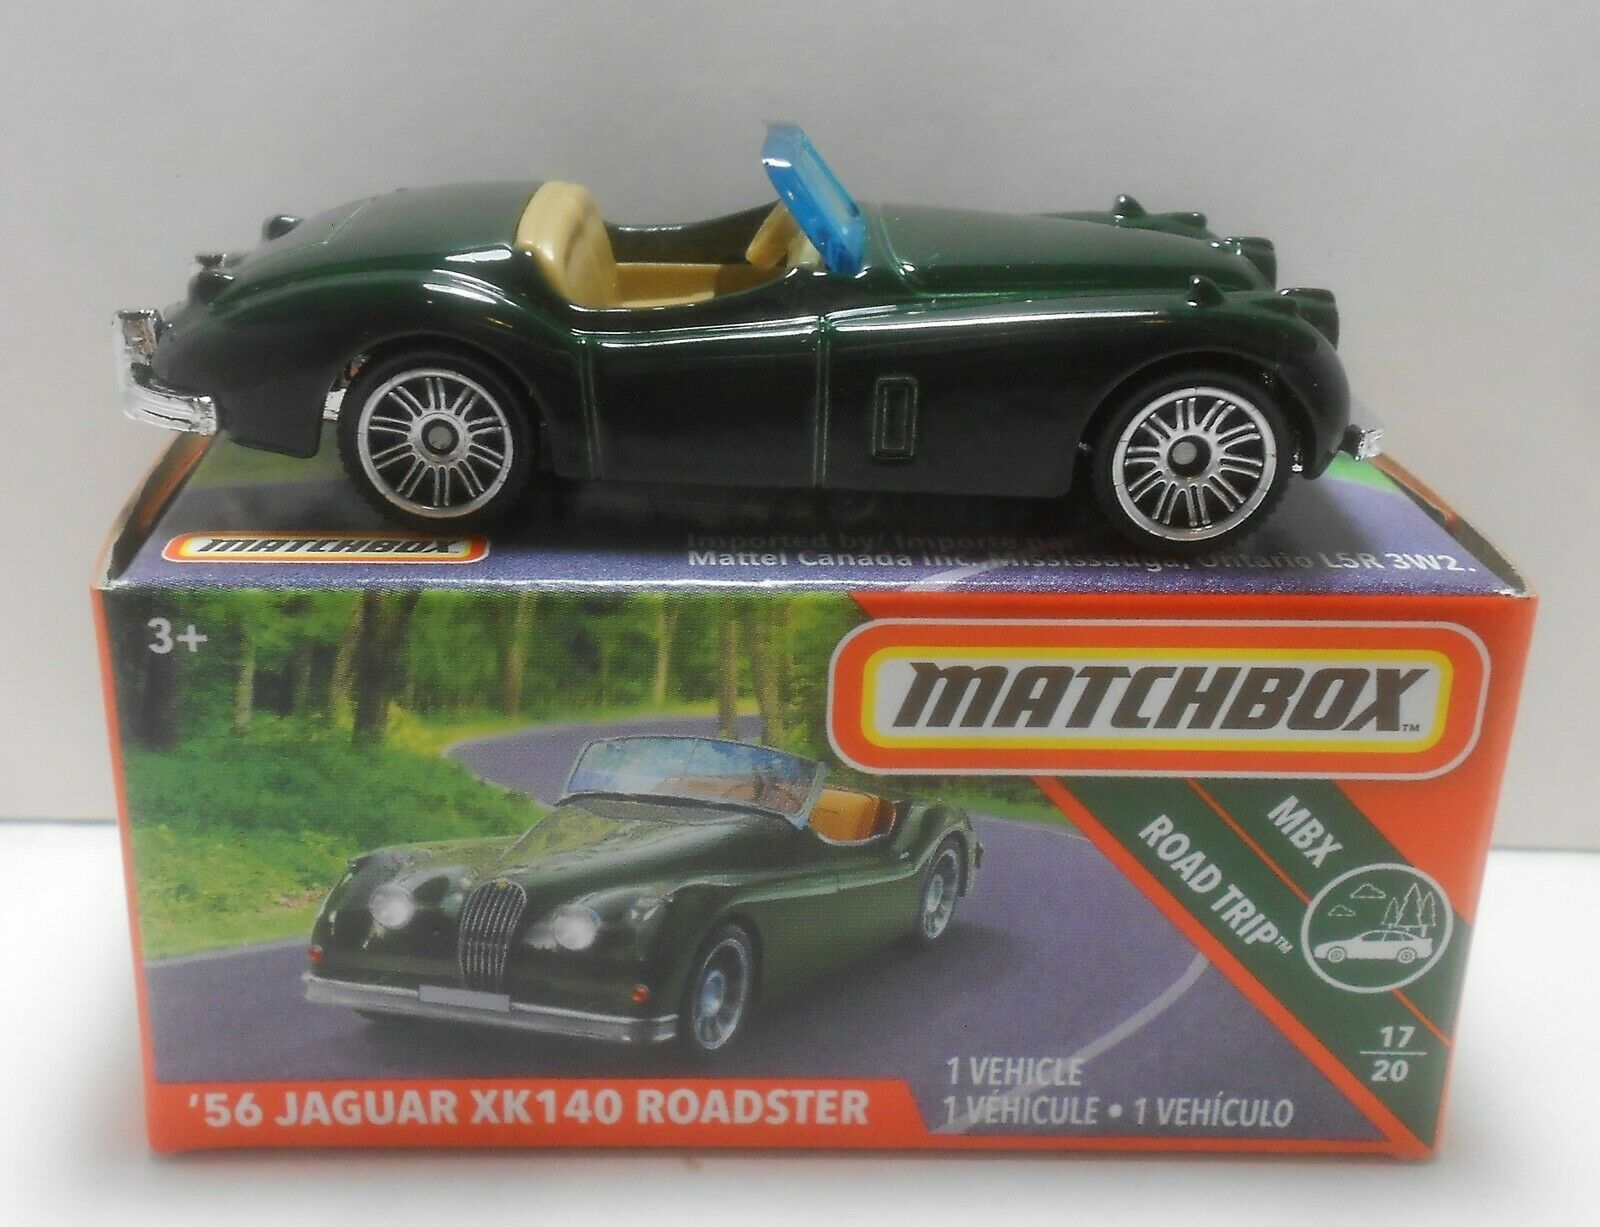 MATCHBOX 2019 POWER GRAB '56 JAGUAR XK140 ROADSTER MBX